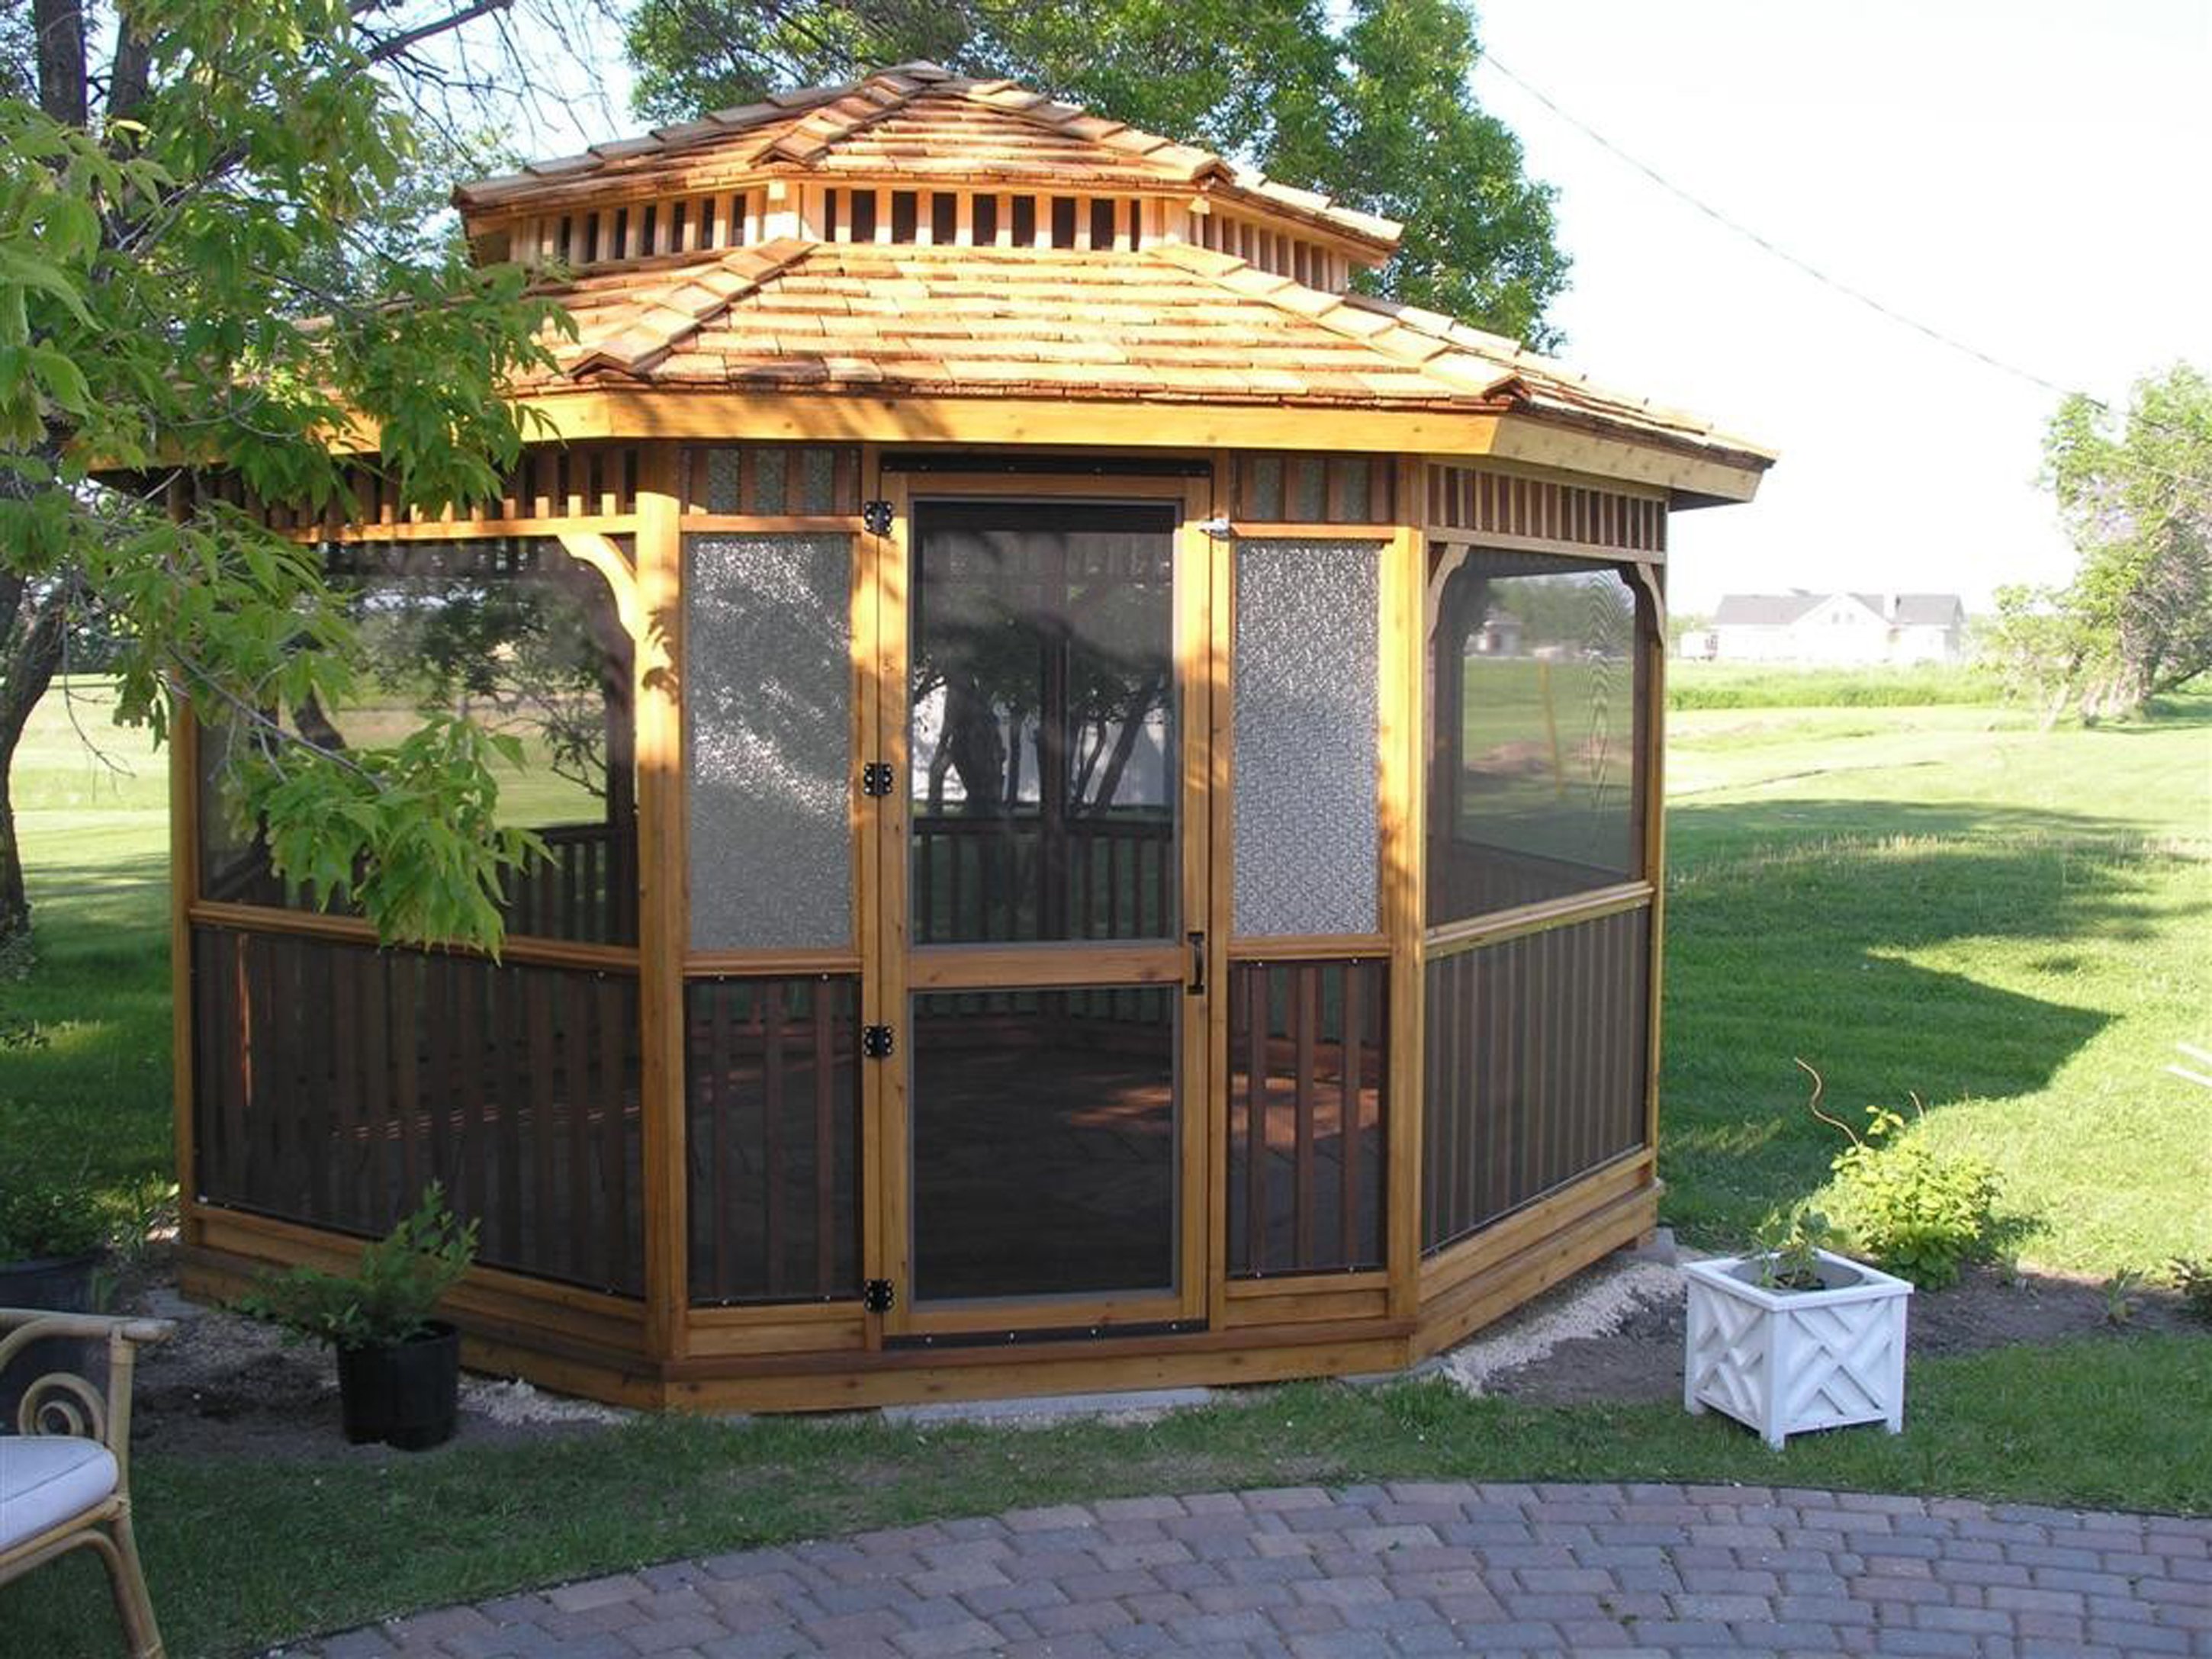 Luxury Brown And Black Gazebo Kit Design Inspiration With Black White Pots Green Yard And Trees Pretty Gazebo Kit Design Inspiration (Image 46 of 123)